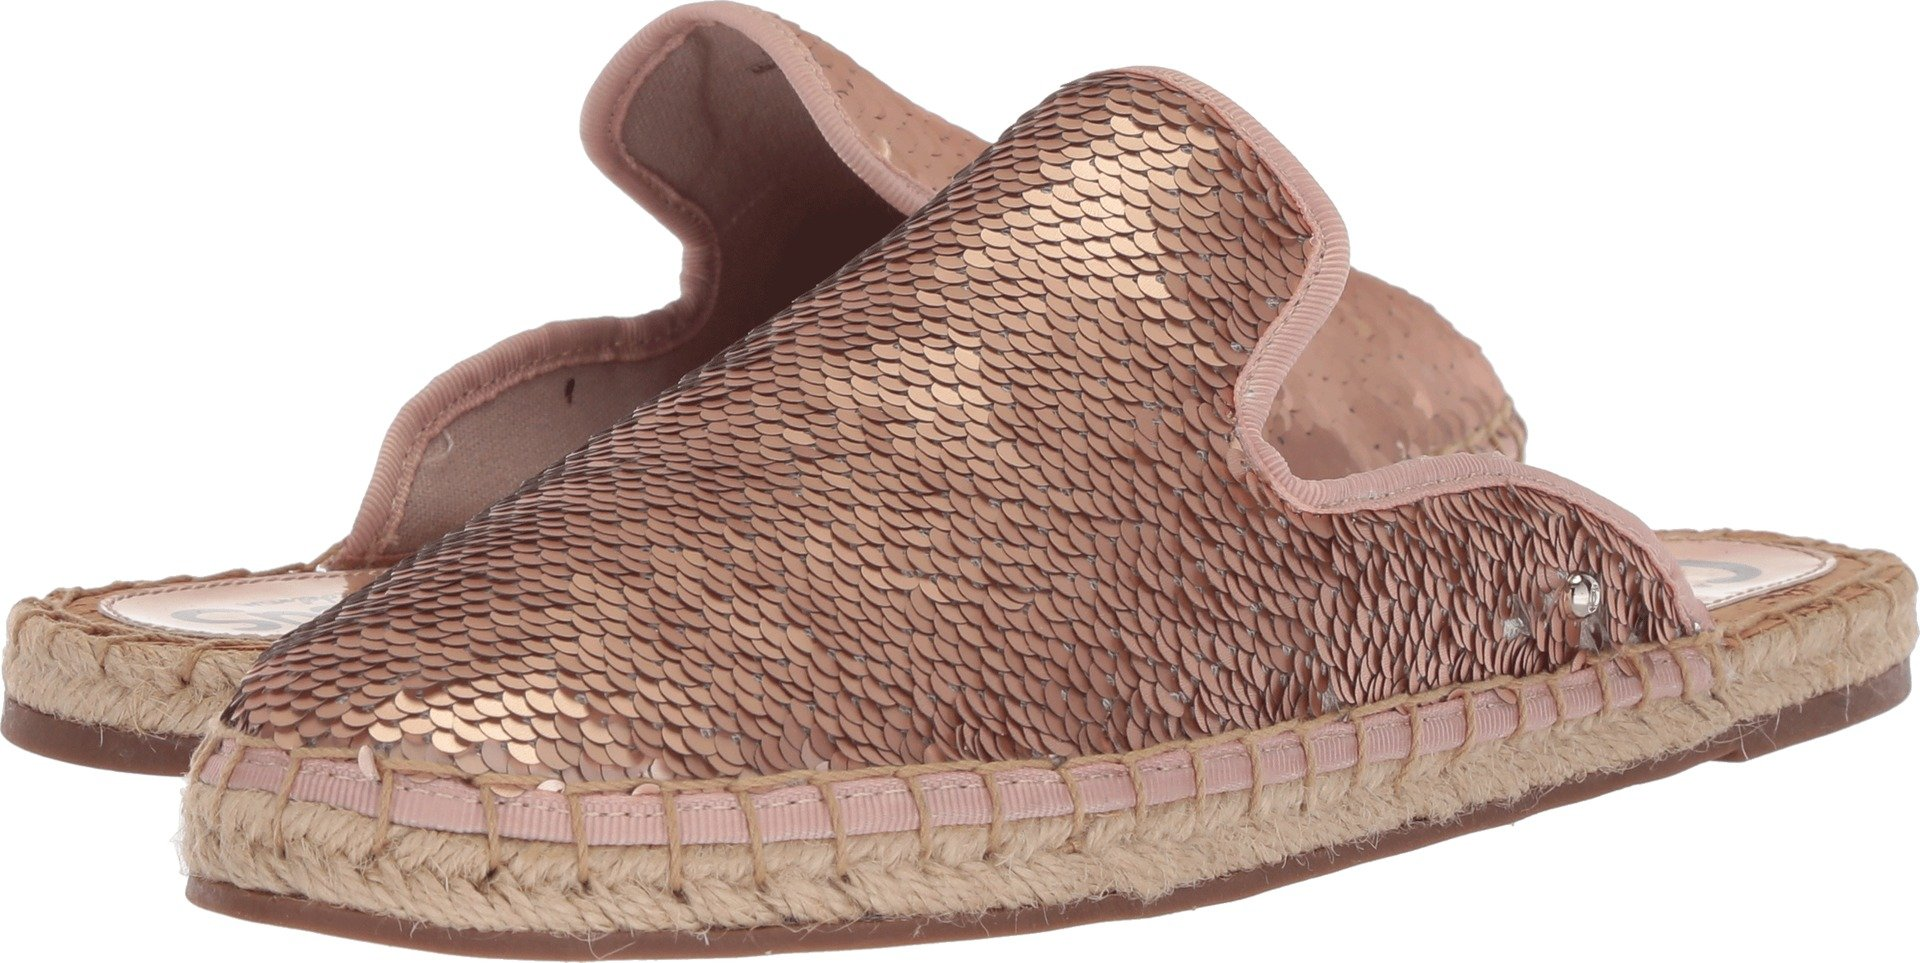 Circus by Sam Edelman Women's Leanne Moccasin, Rose Gold/Silver, 7.5 M US